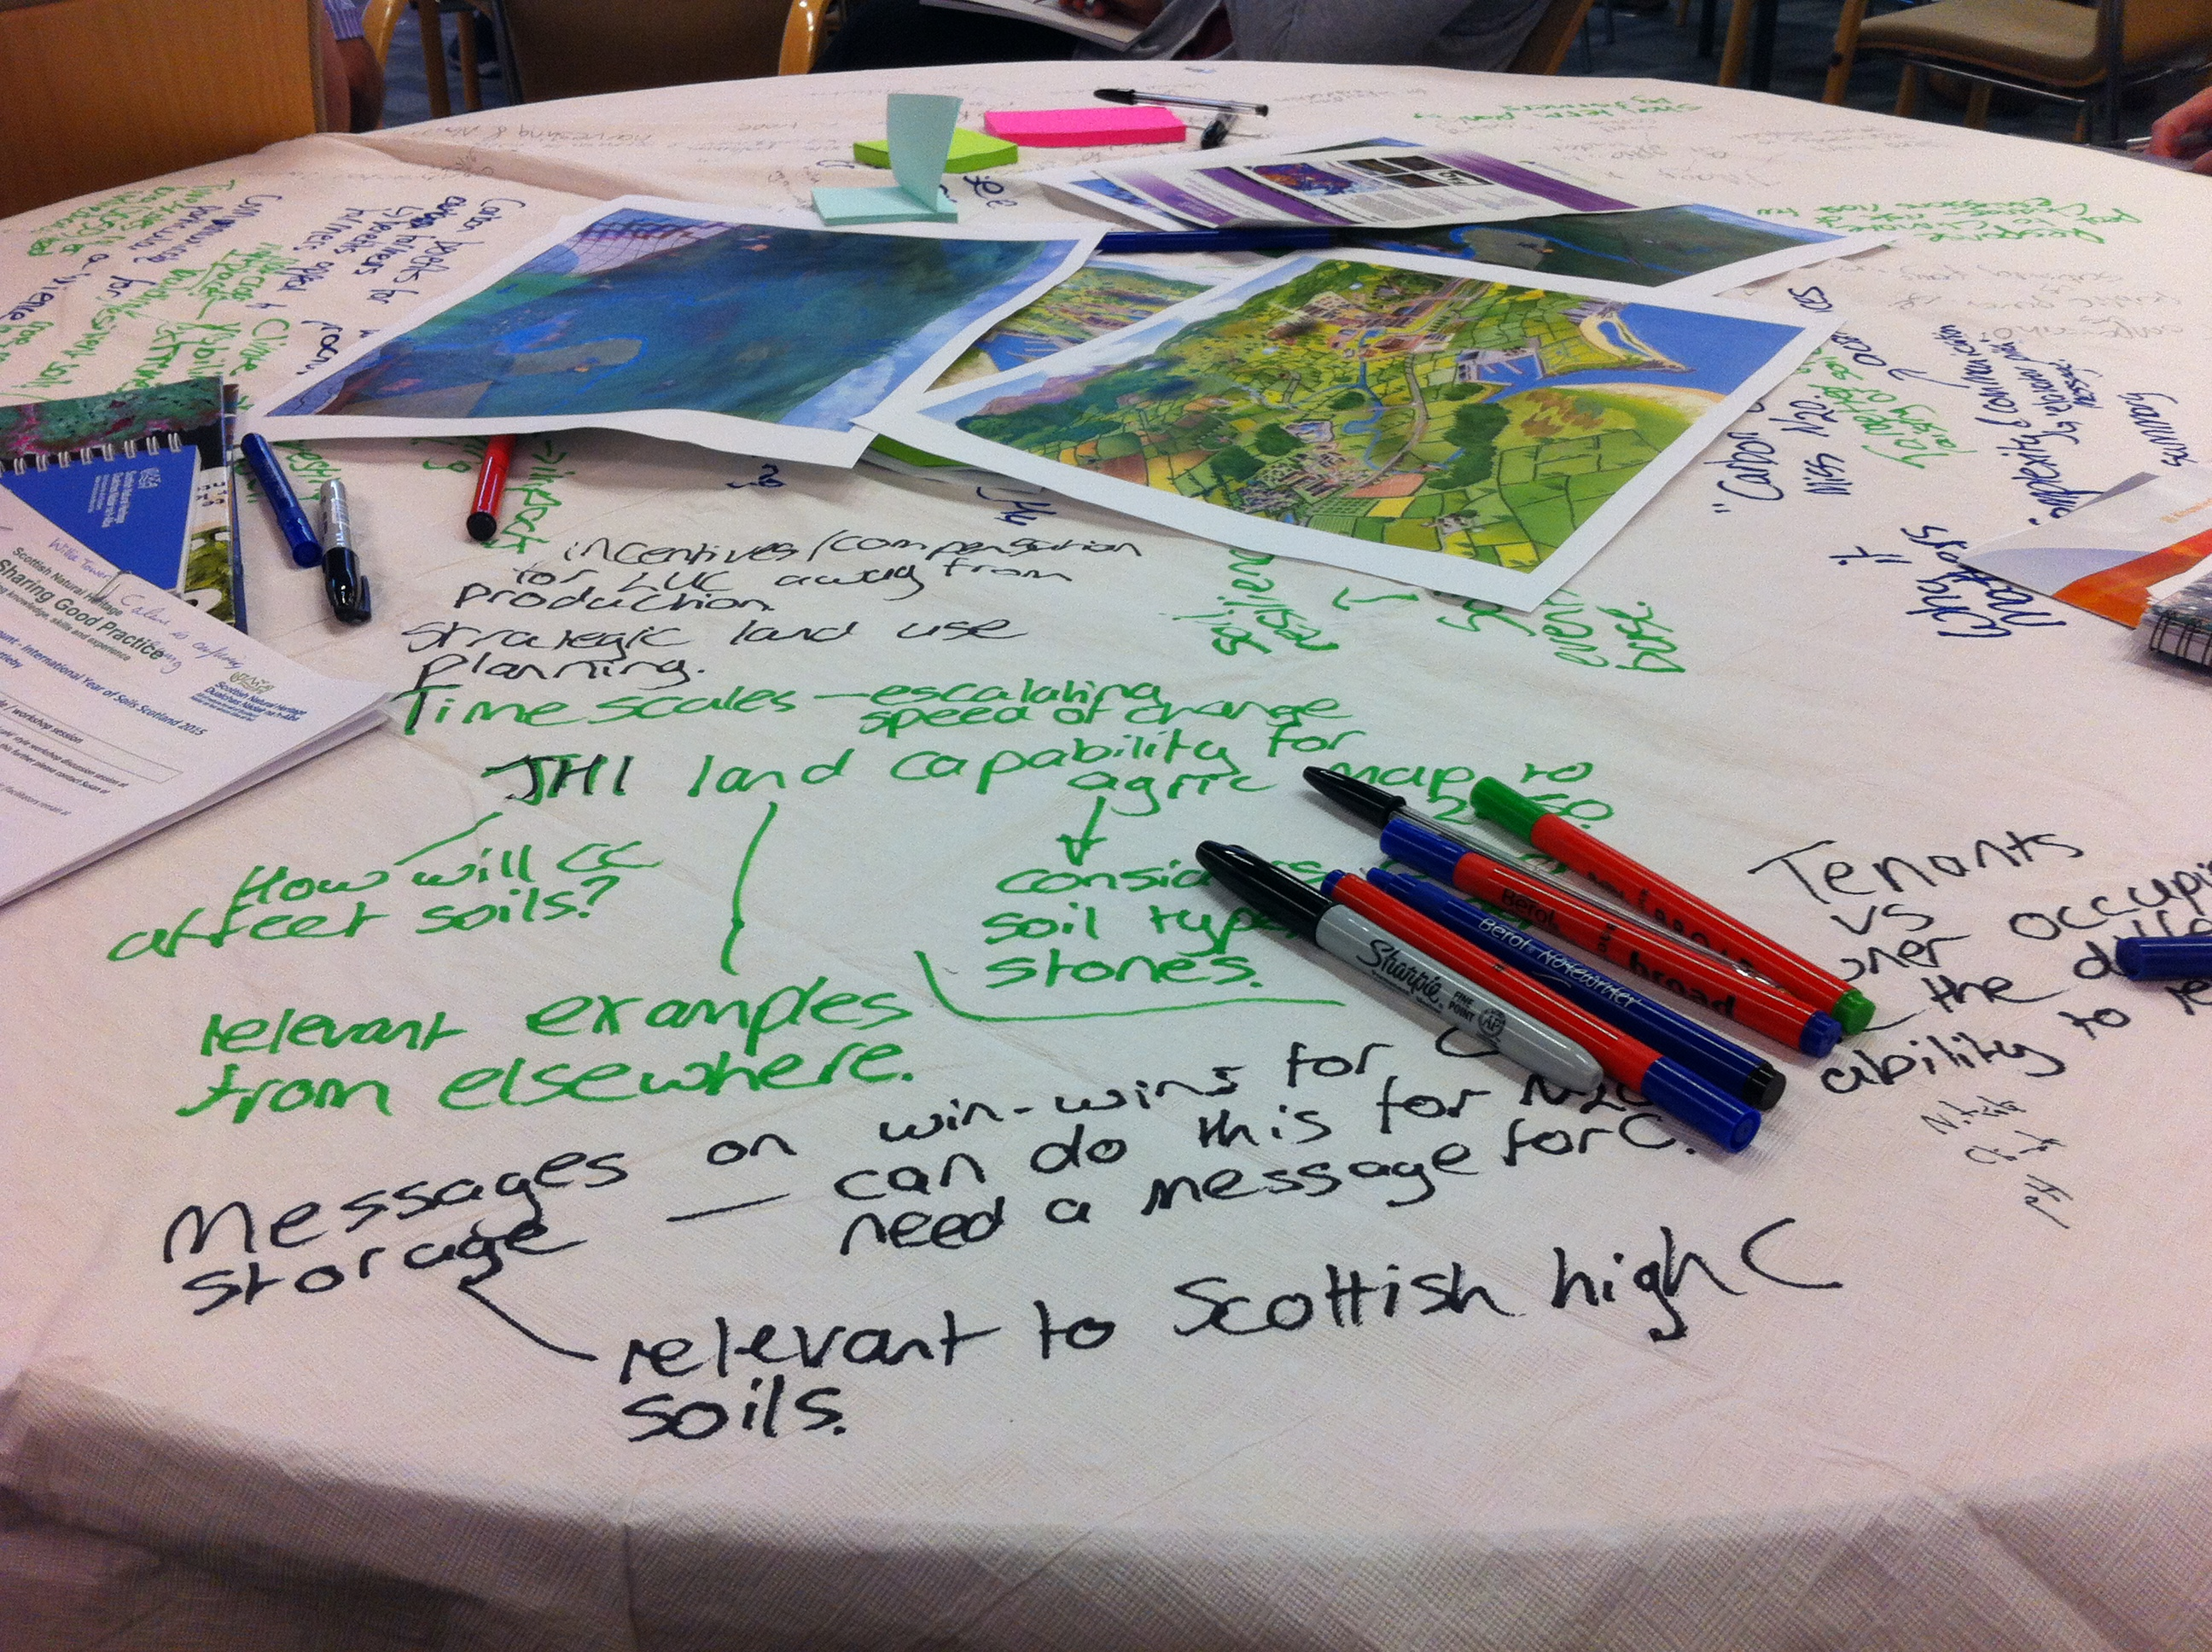 Notes on tablecloth at Making Soils Count event